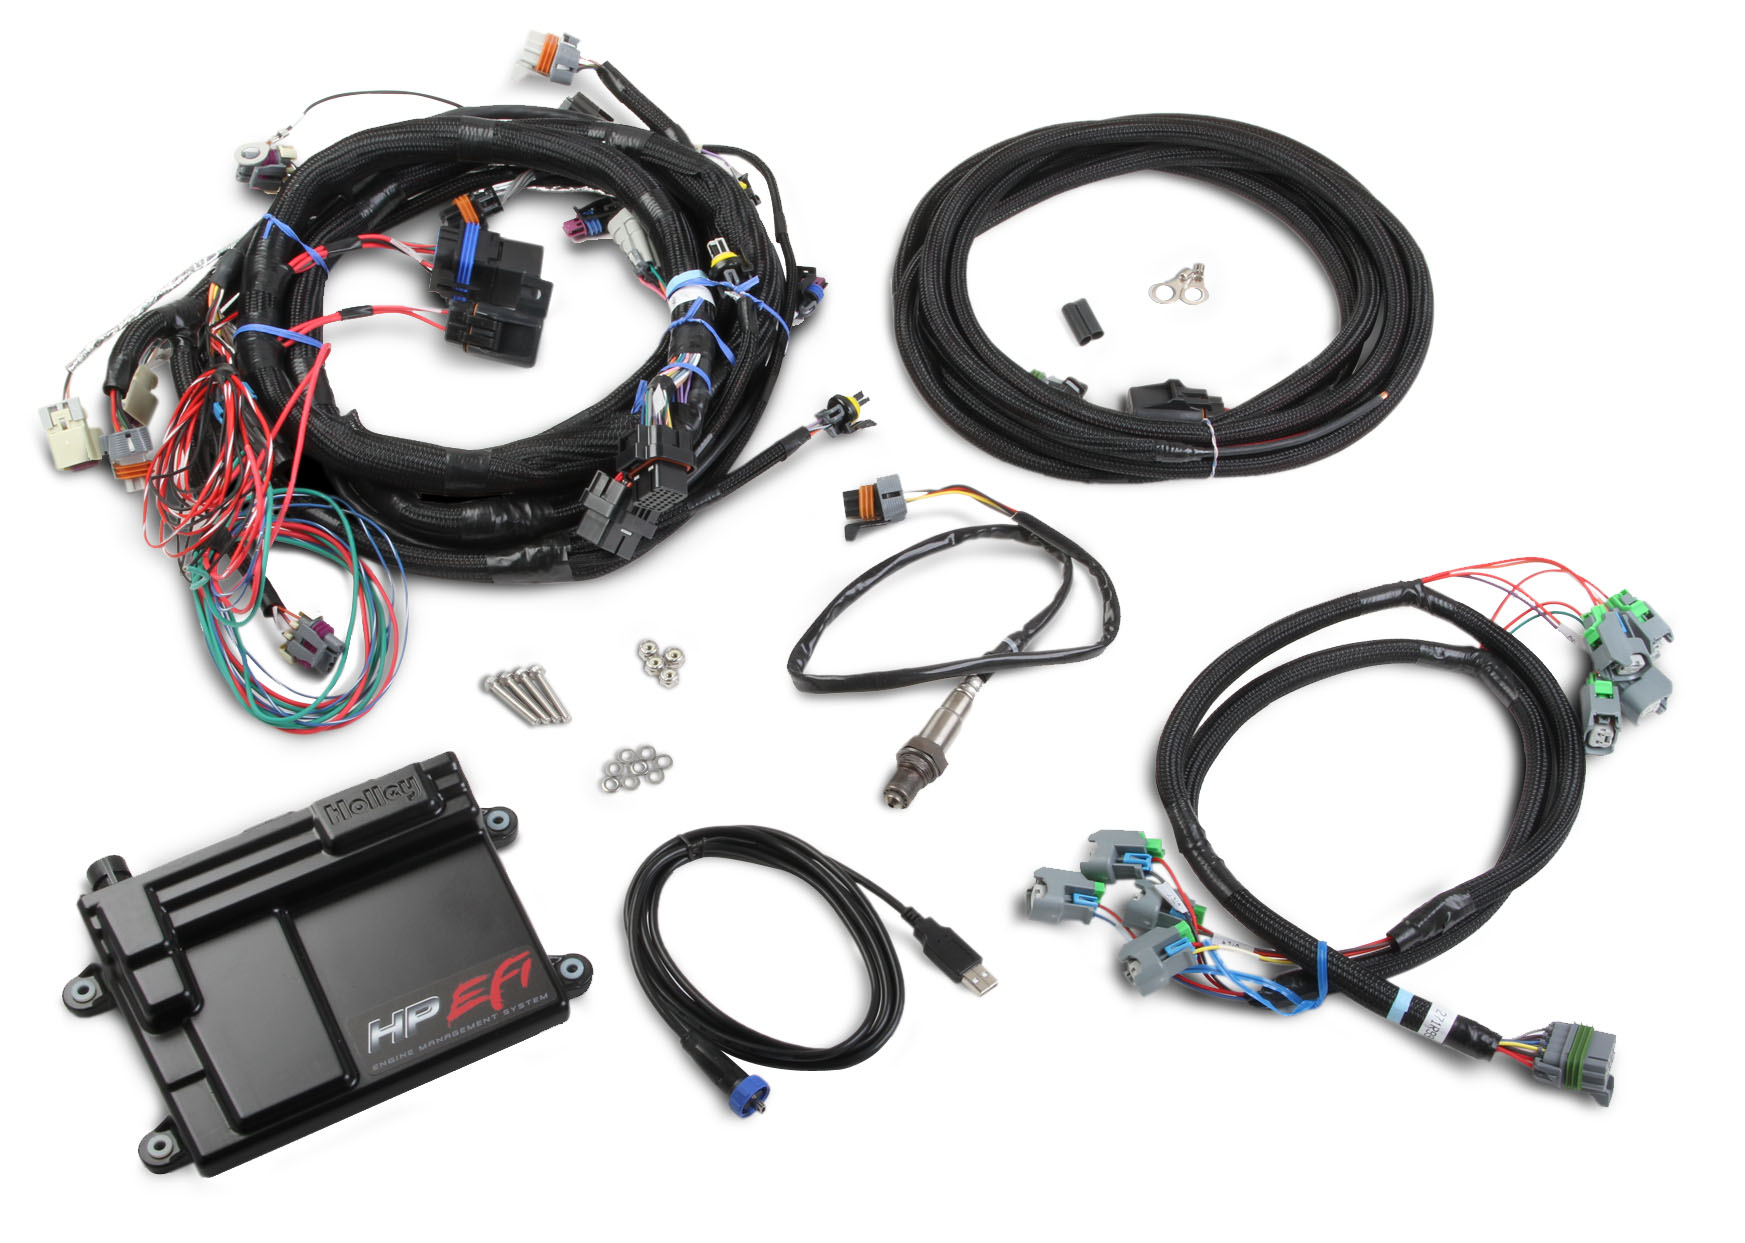 holley hp efi ecu harness kit ls2 3 7 mullenix racing. Black Bedroom Furniture Sets. Home Design Ideas